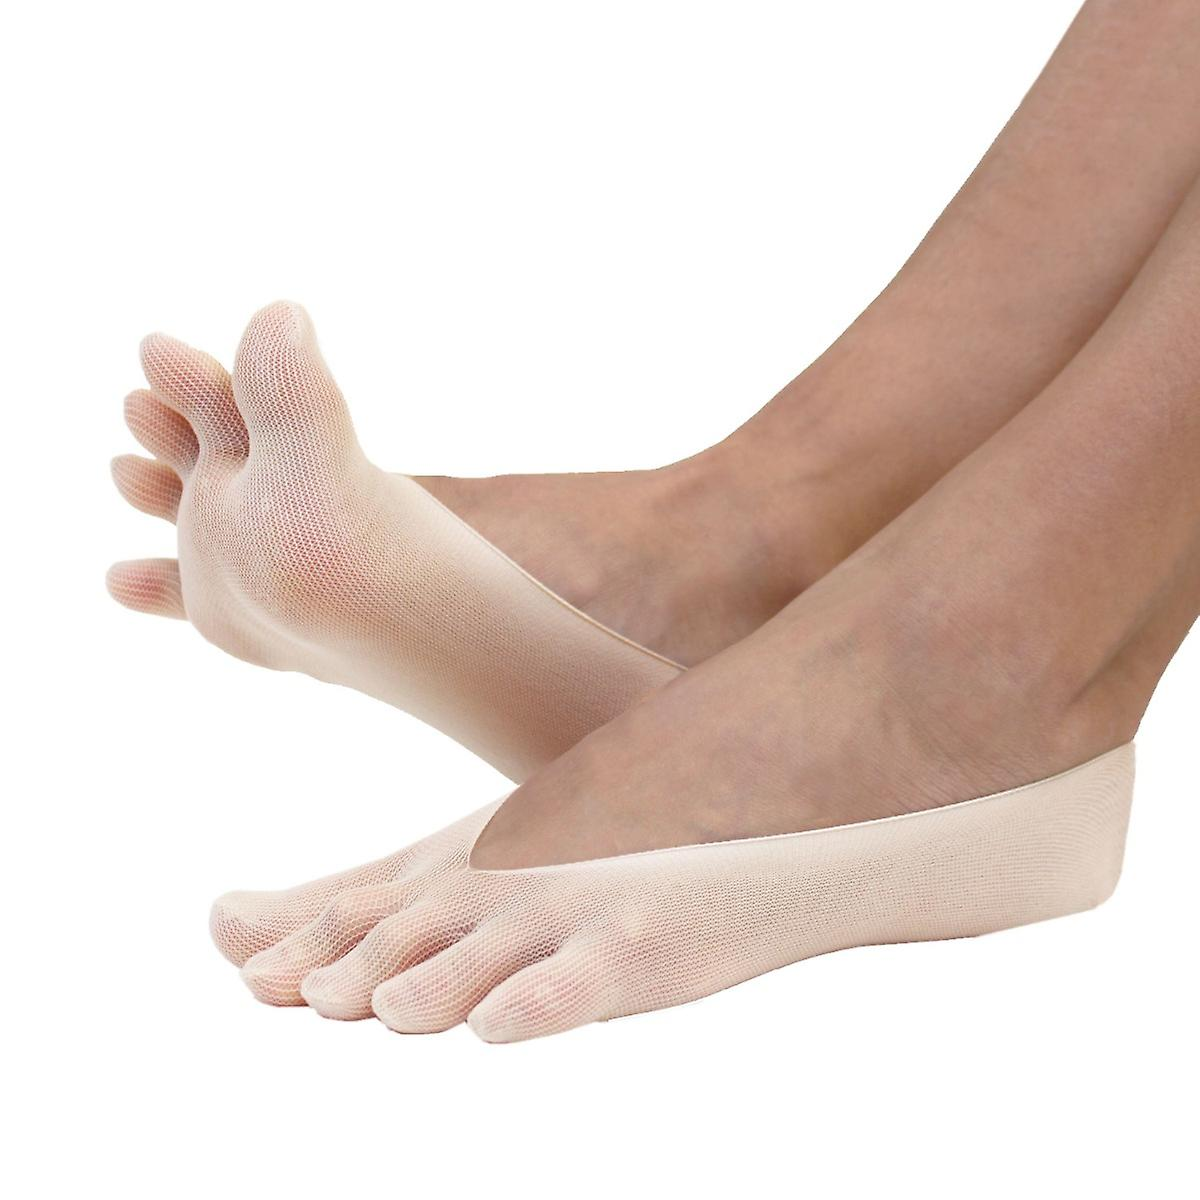 LEGWEAR - Plain Nylon Toe Foot Cover